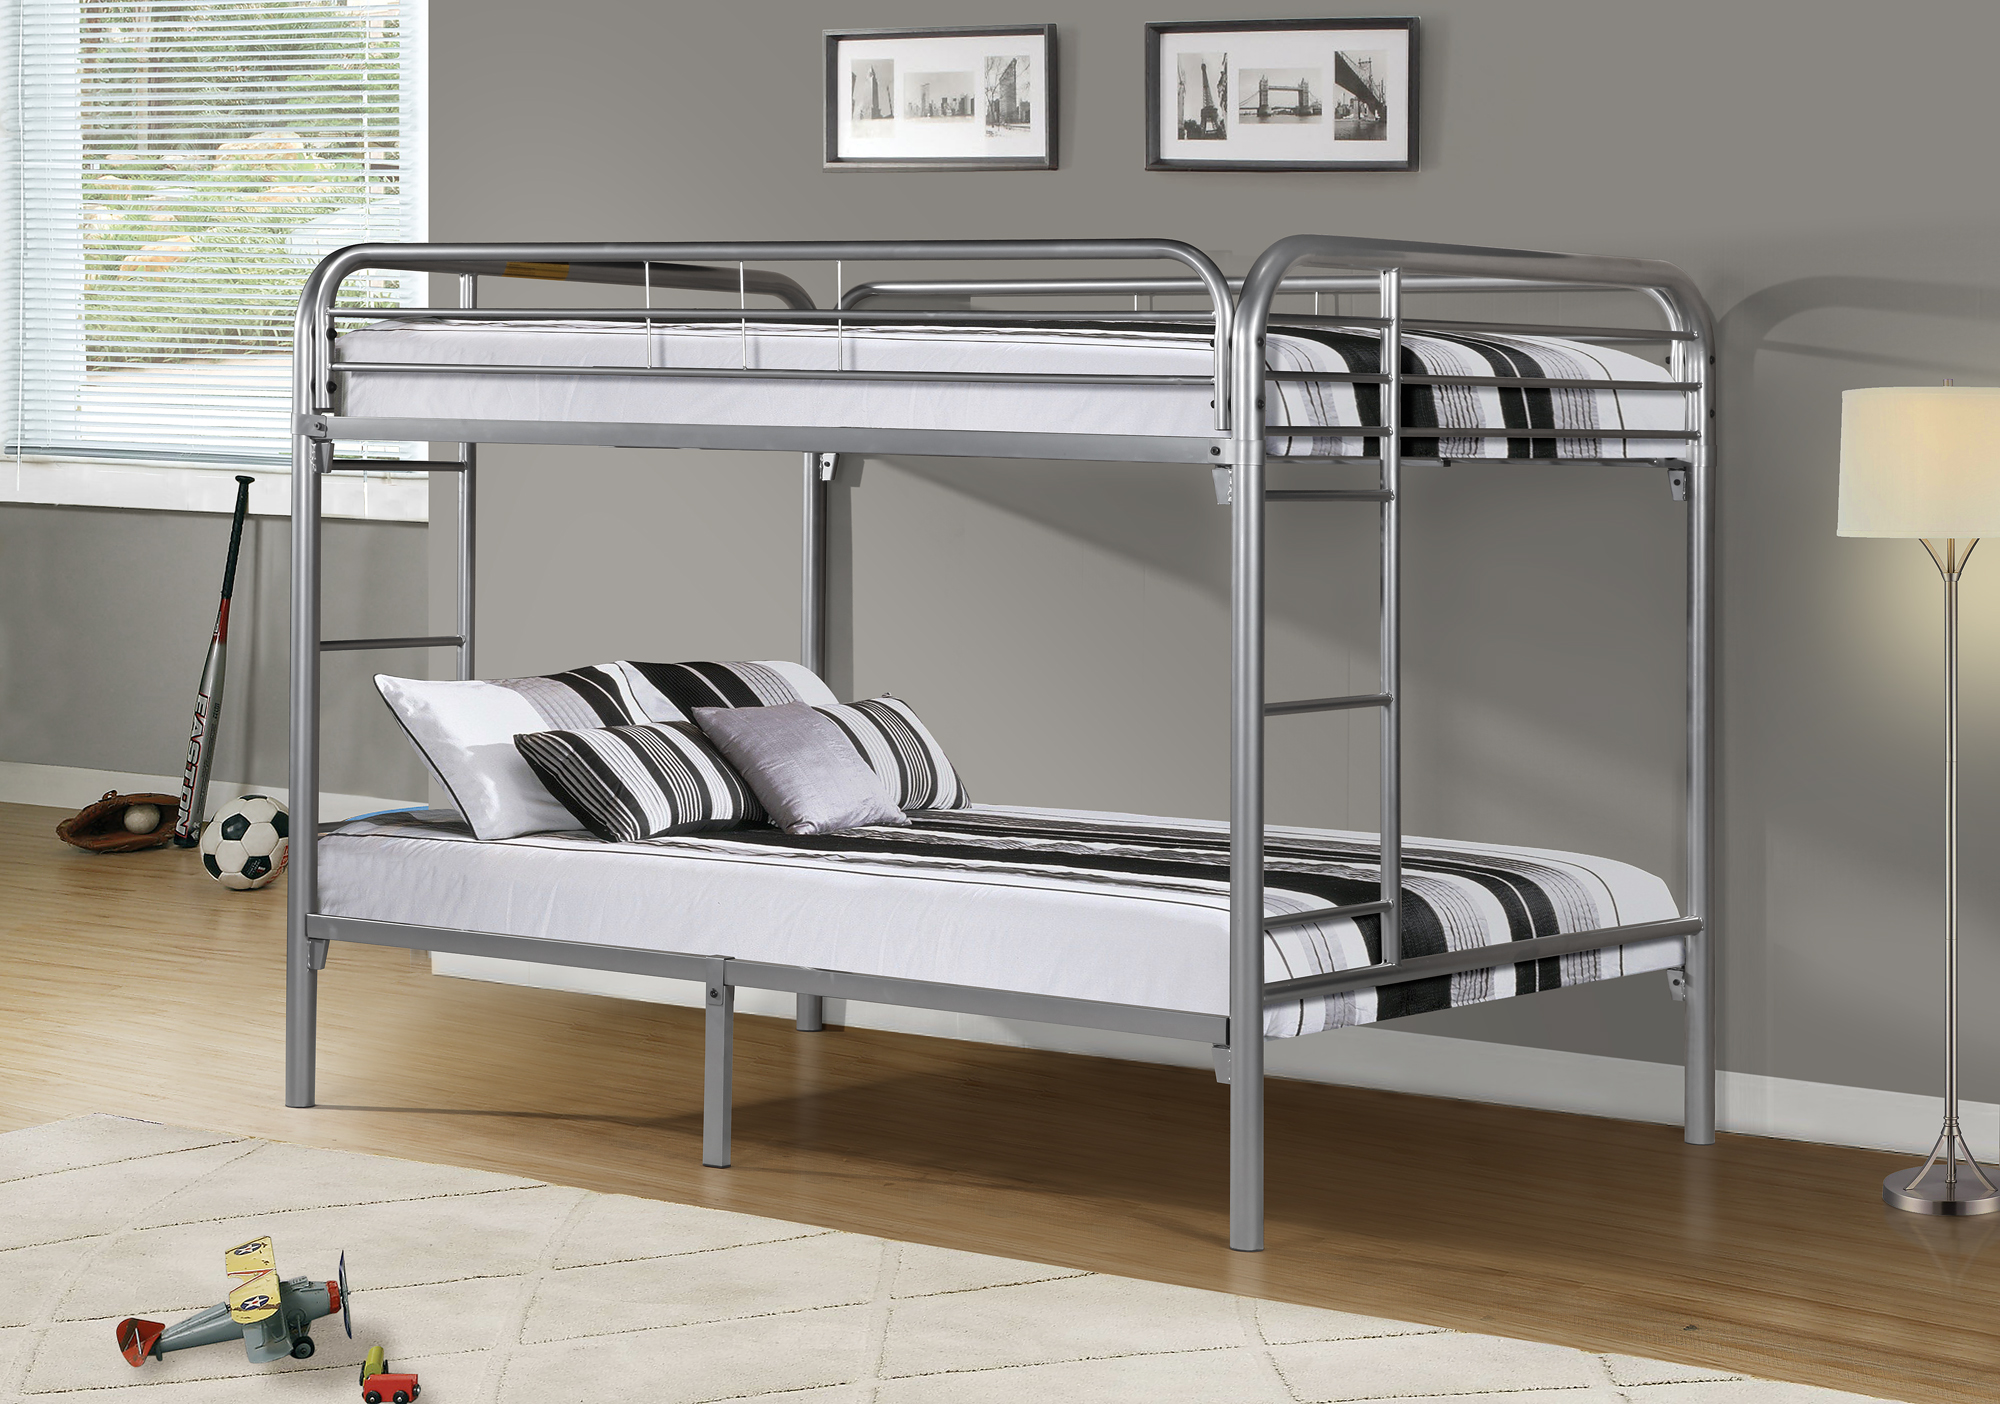 Picture of: Venus Ii Silver Metal Double Double Bunk Bed Frame Brand New Winnipeg Furniture Store